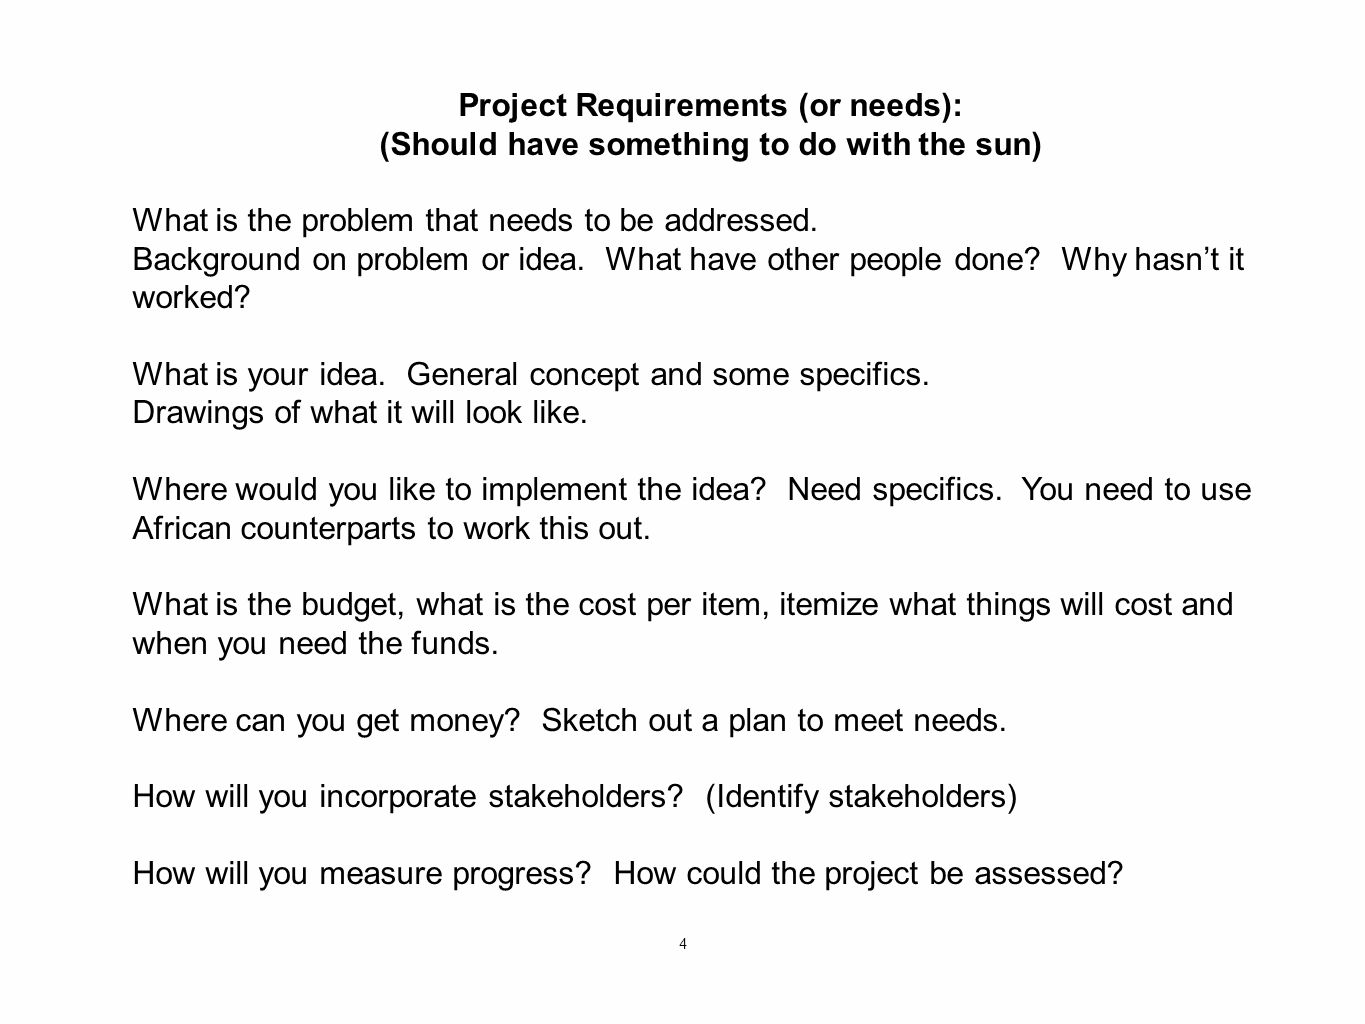 4 Project Requirements (or needs): (Should have something to do with the sun) What is the problem that needs to be addressed.